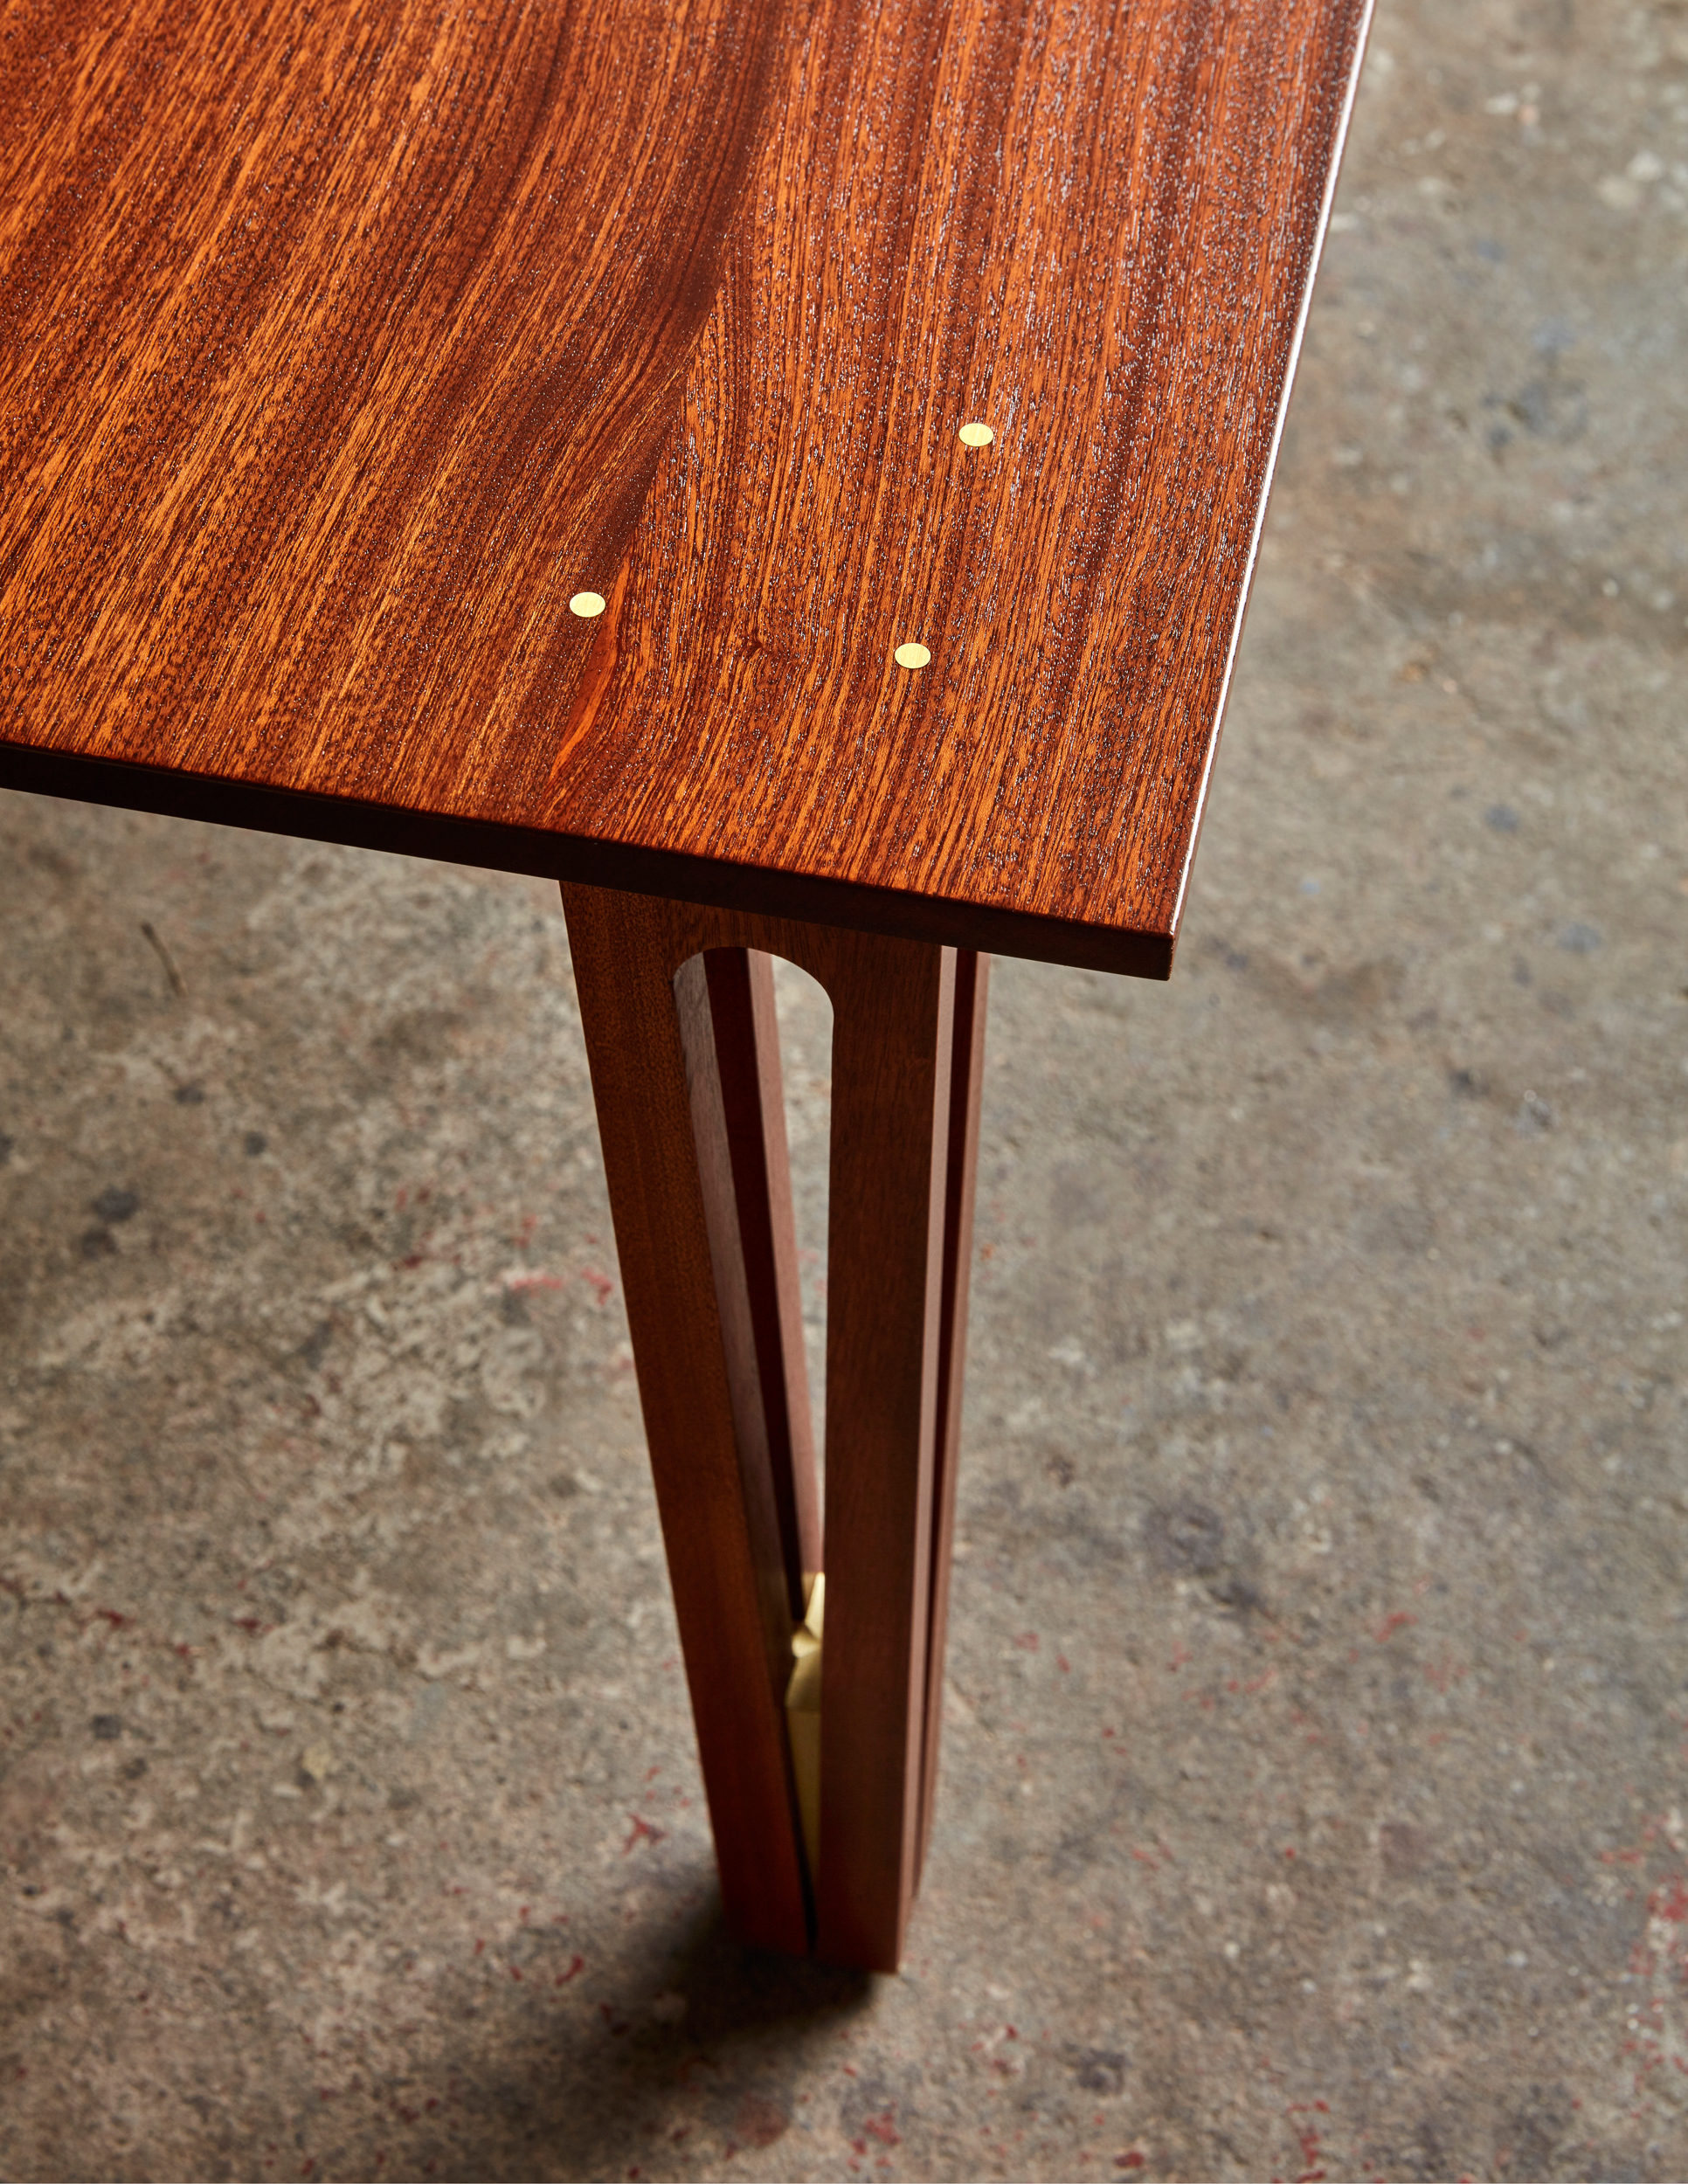 BOLAND WOODWORKING_FRET COFFEE TABLE SQUARE_053 FINAL Credit Jason Varney.jpg